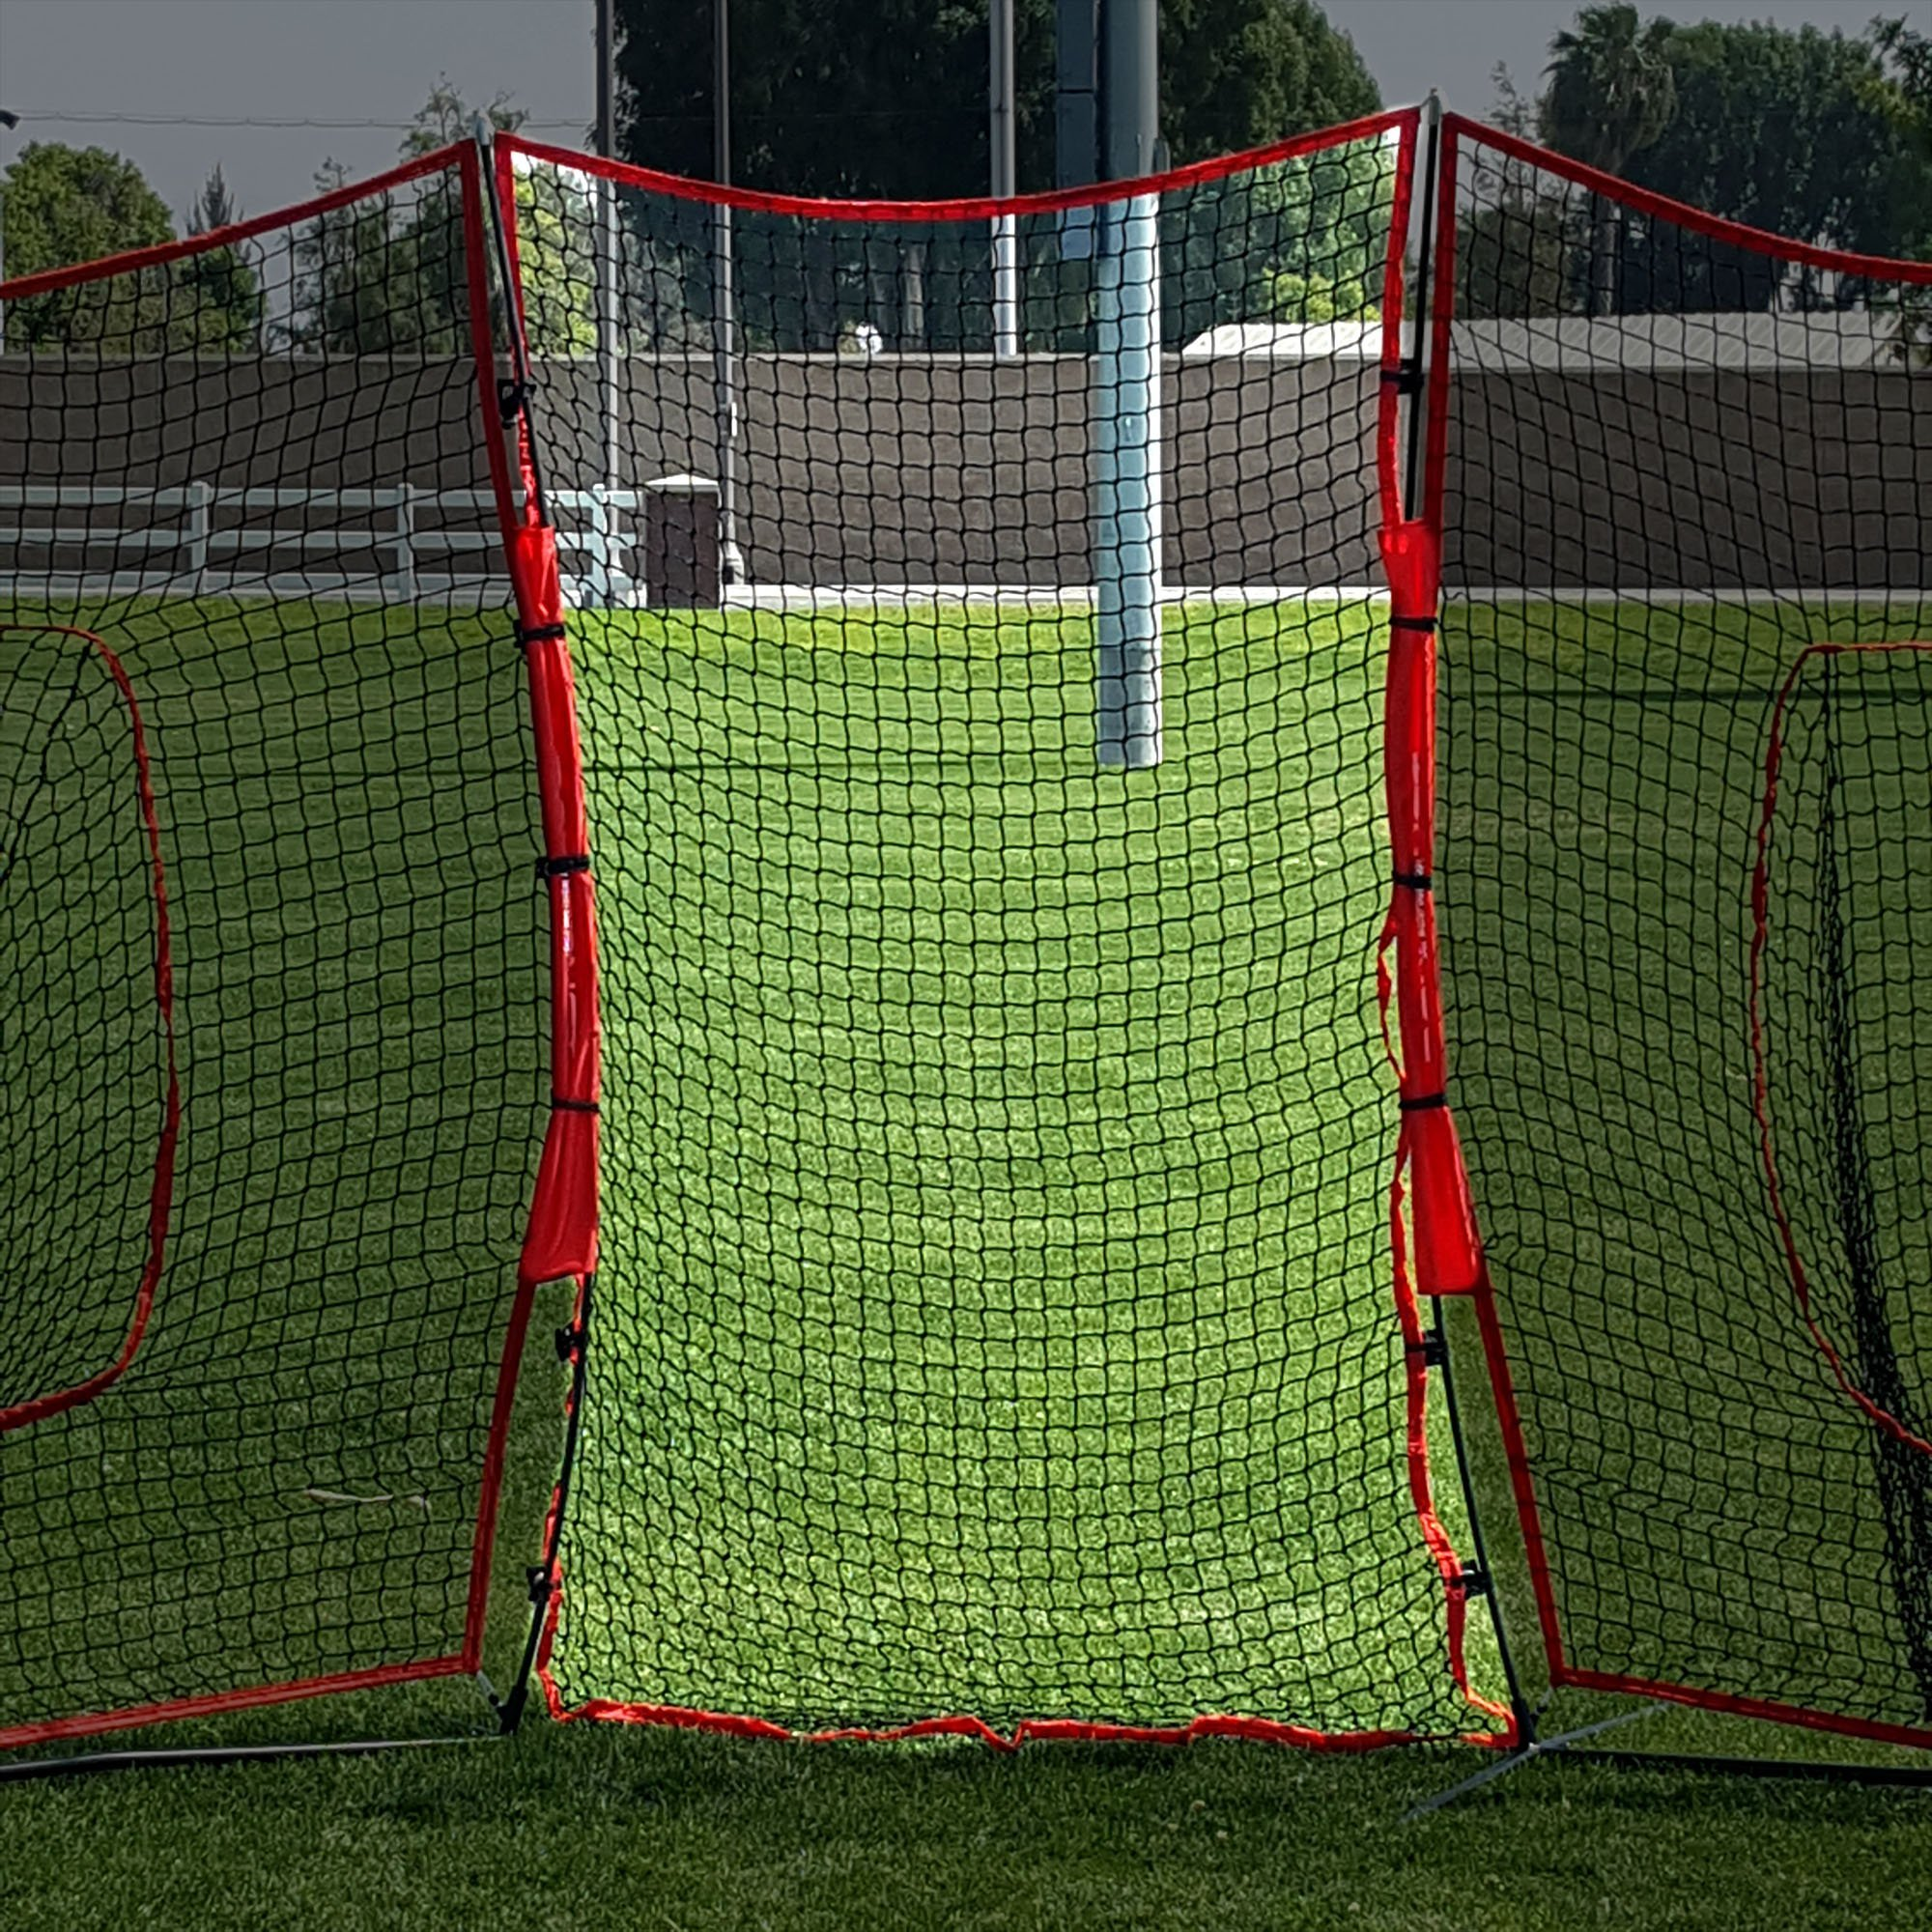 PowerNet Connector for 7x7 Barrier Nets (4x7 EXTENDER NET ONLY) | for Baseball and Lacrosse | 28 SQFT of Additional Protection | Safety Backstop | Portable EZ Setup | Durable Knotless Netting